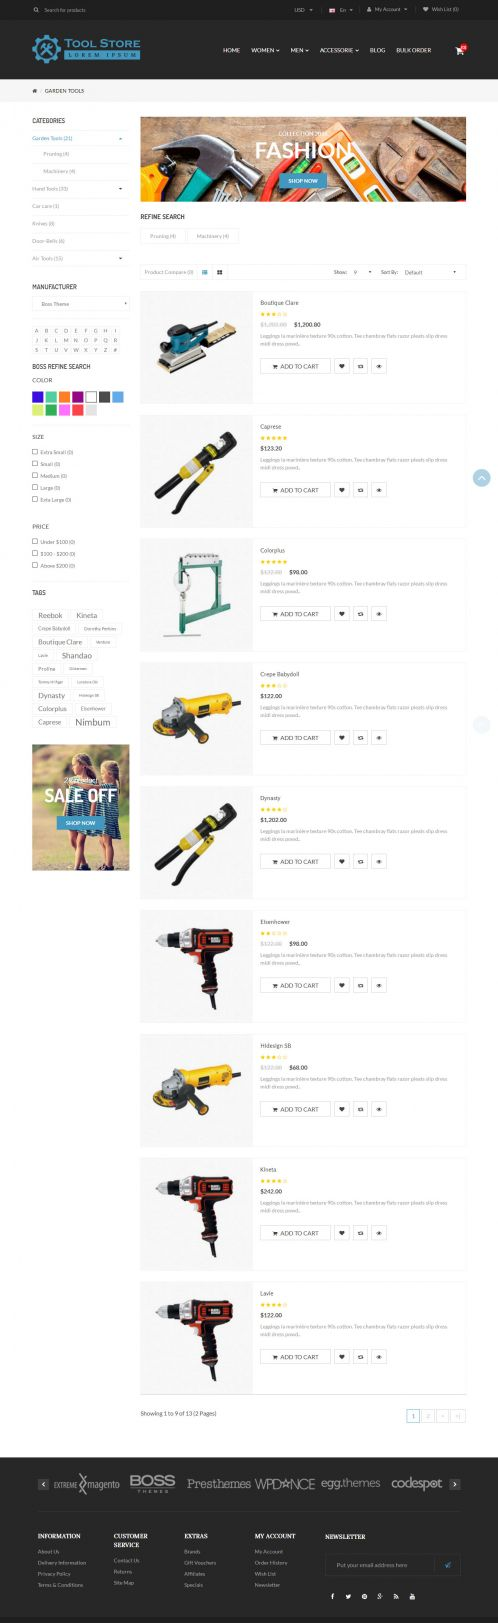 Bossthemes ToolStore - Category List